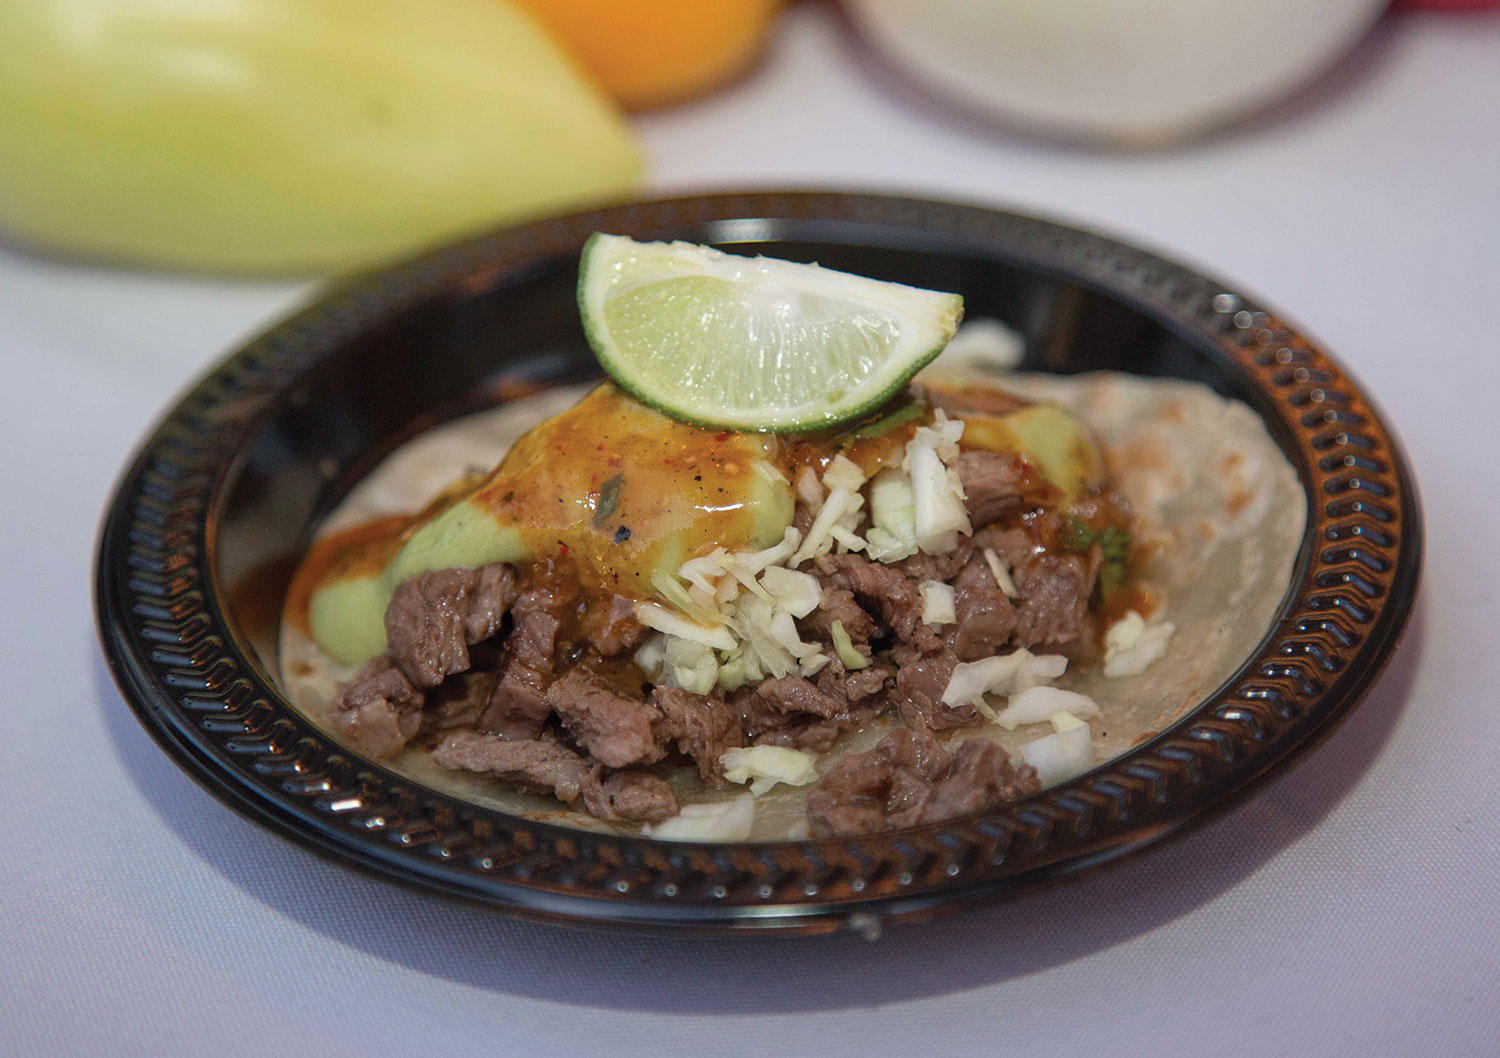 photo by Angelina Aragon; Carne asada taco from Tortas Paquime at Devour the World